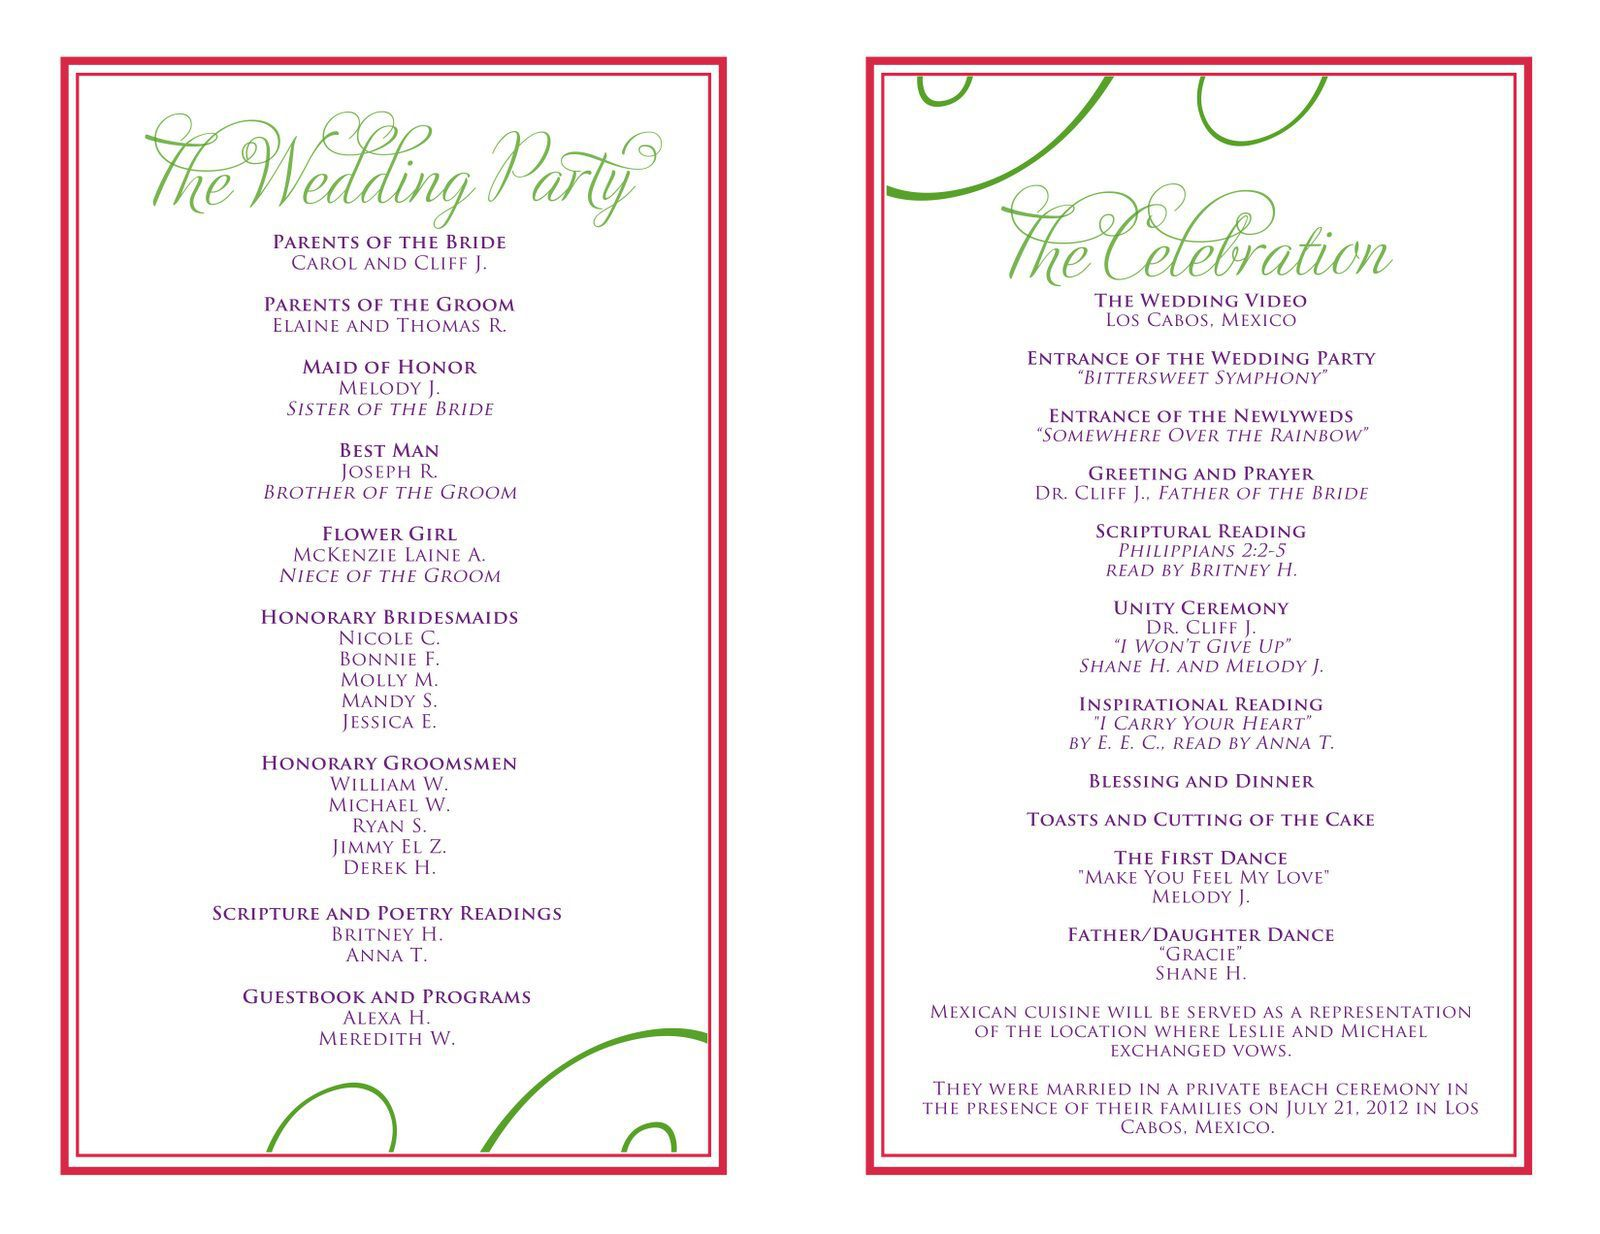 004 Stunning Free Downloadable Wedding Program Template High Definition  Templates That Can Be Printed Printable Fall ReceptionFull